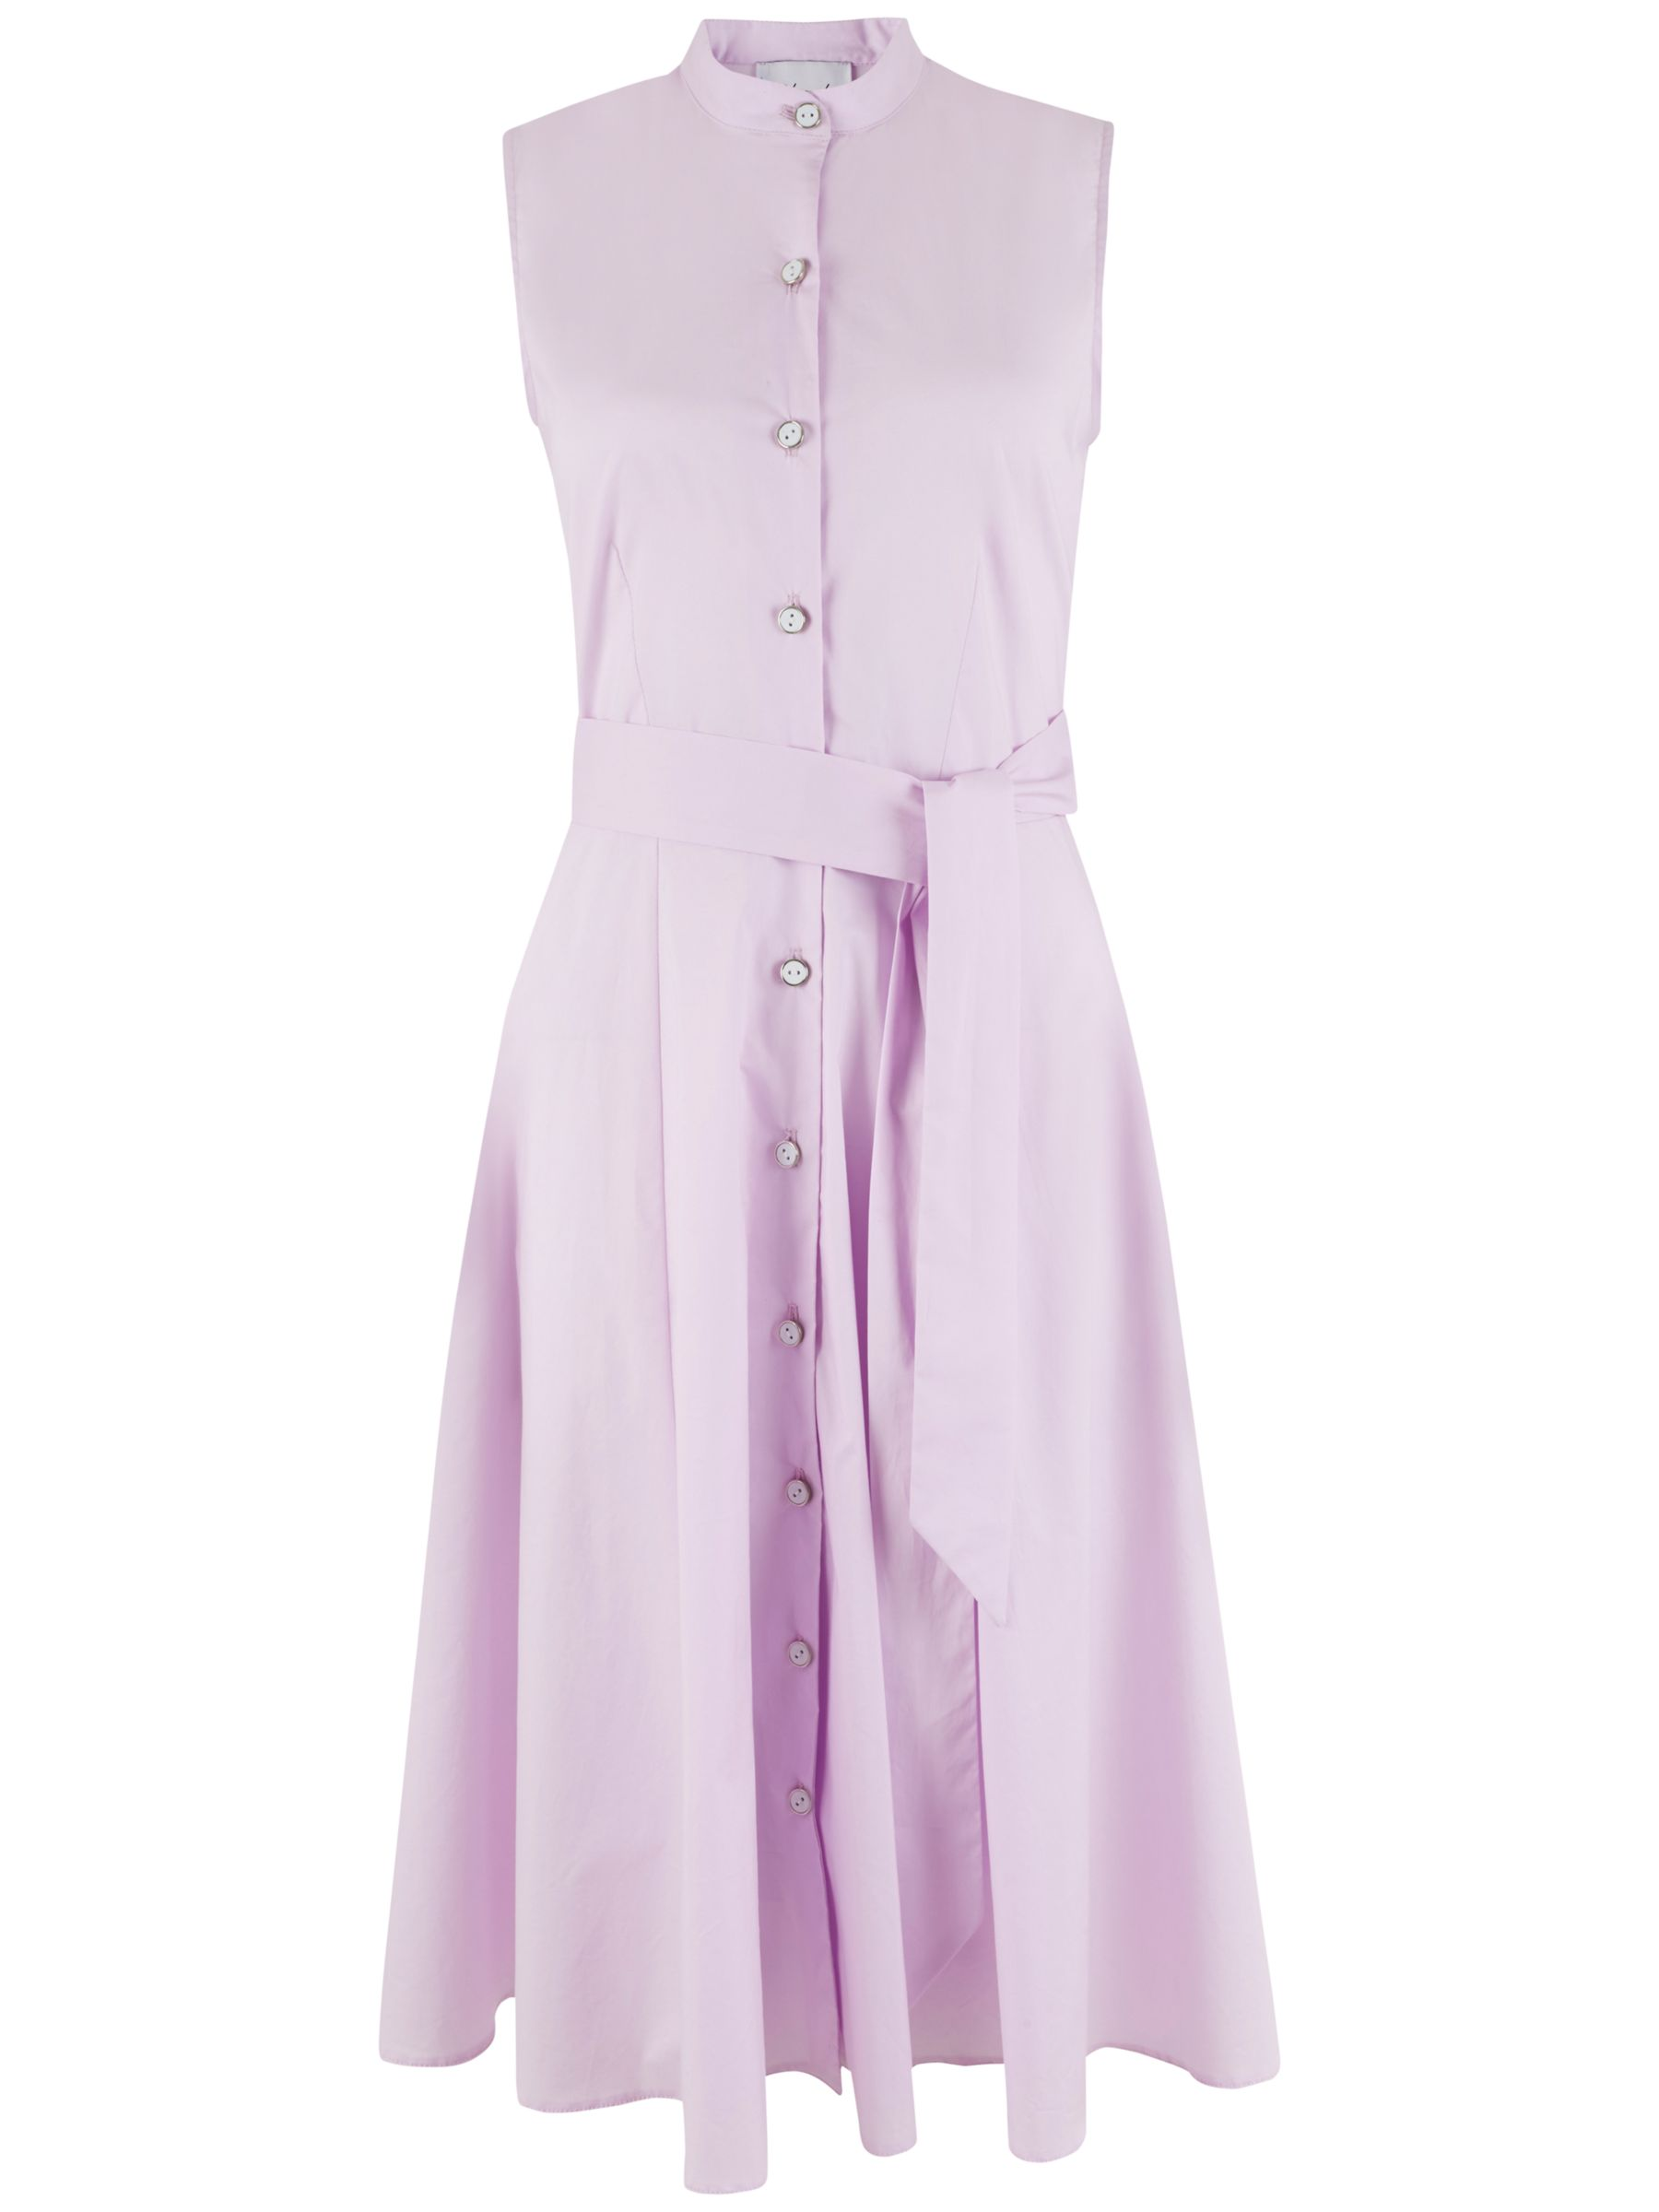 Closet Closet Button Front Skater Dress, Pink